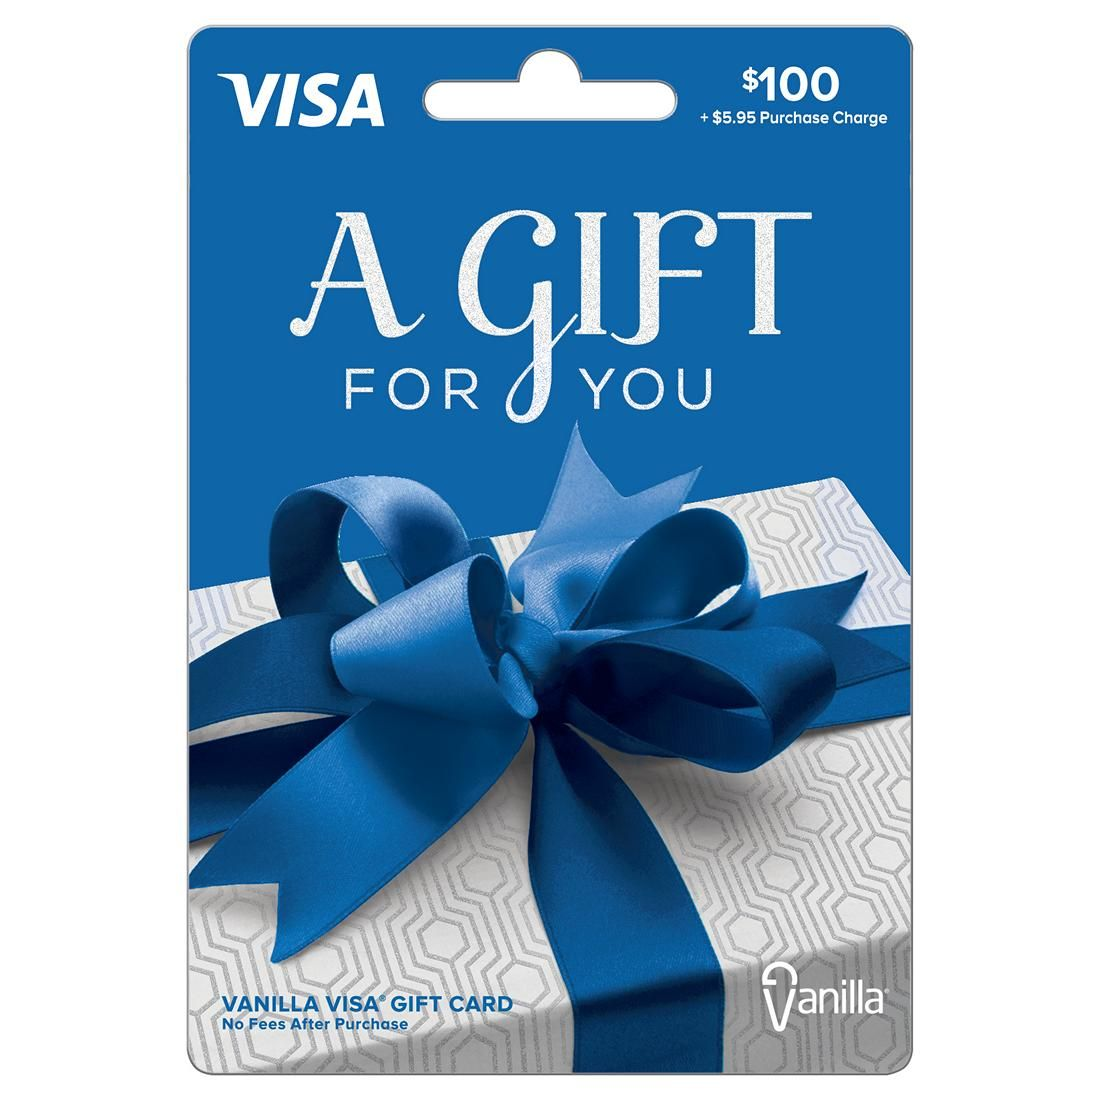 Freebie Hurry There Are Only 15 Available Each Day Go Go Go Free Amex Gift Card No Fees 5 00 Value Its F Prepaid Debit Cards Prepaid Card Debit Card